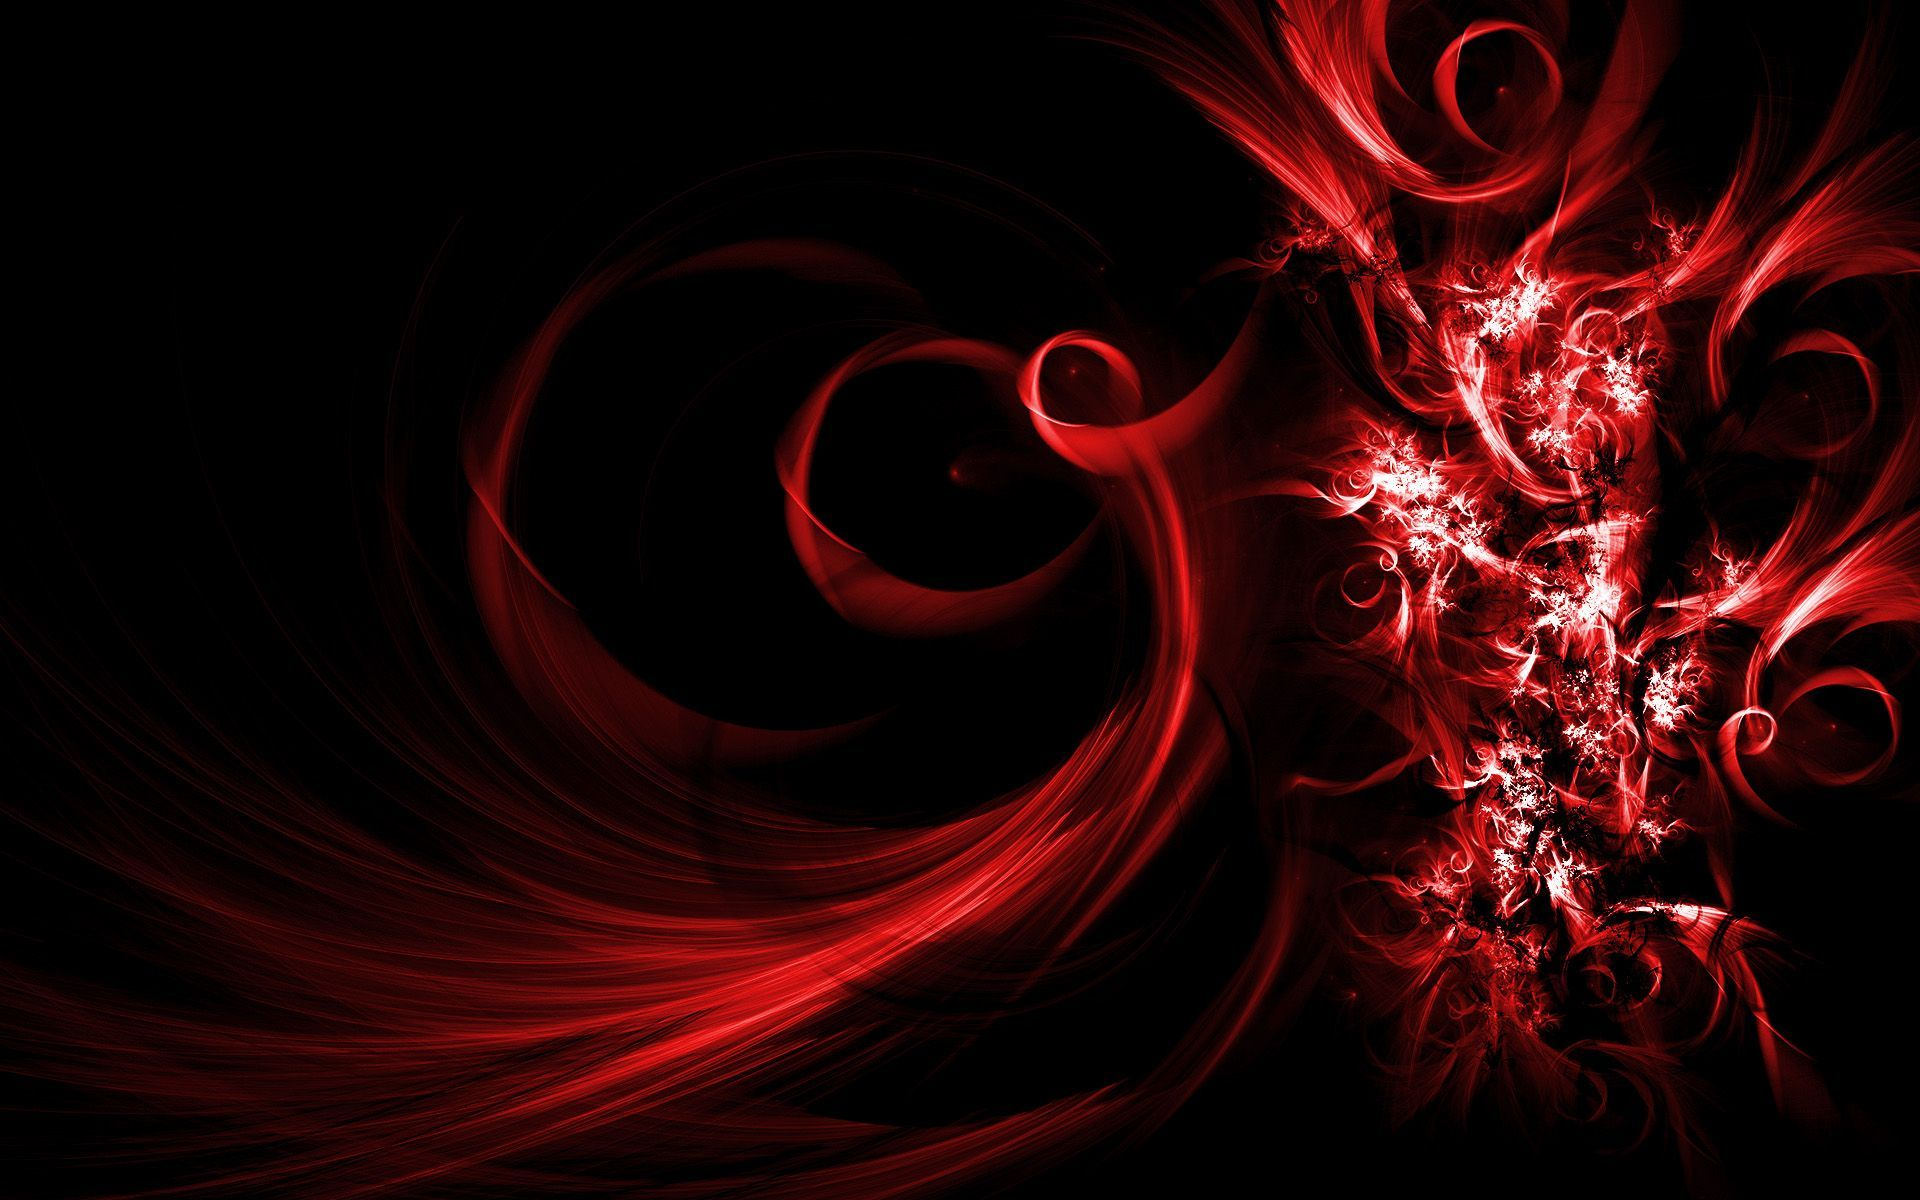 Red And Black Wallpaper Designs 14 Background Hdblackwallpaper Com Red And Black Wallpaper Abstract Art Wallpaper Black Abstract Background